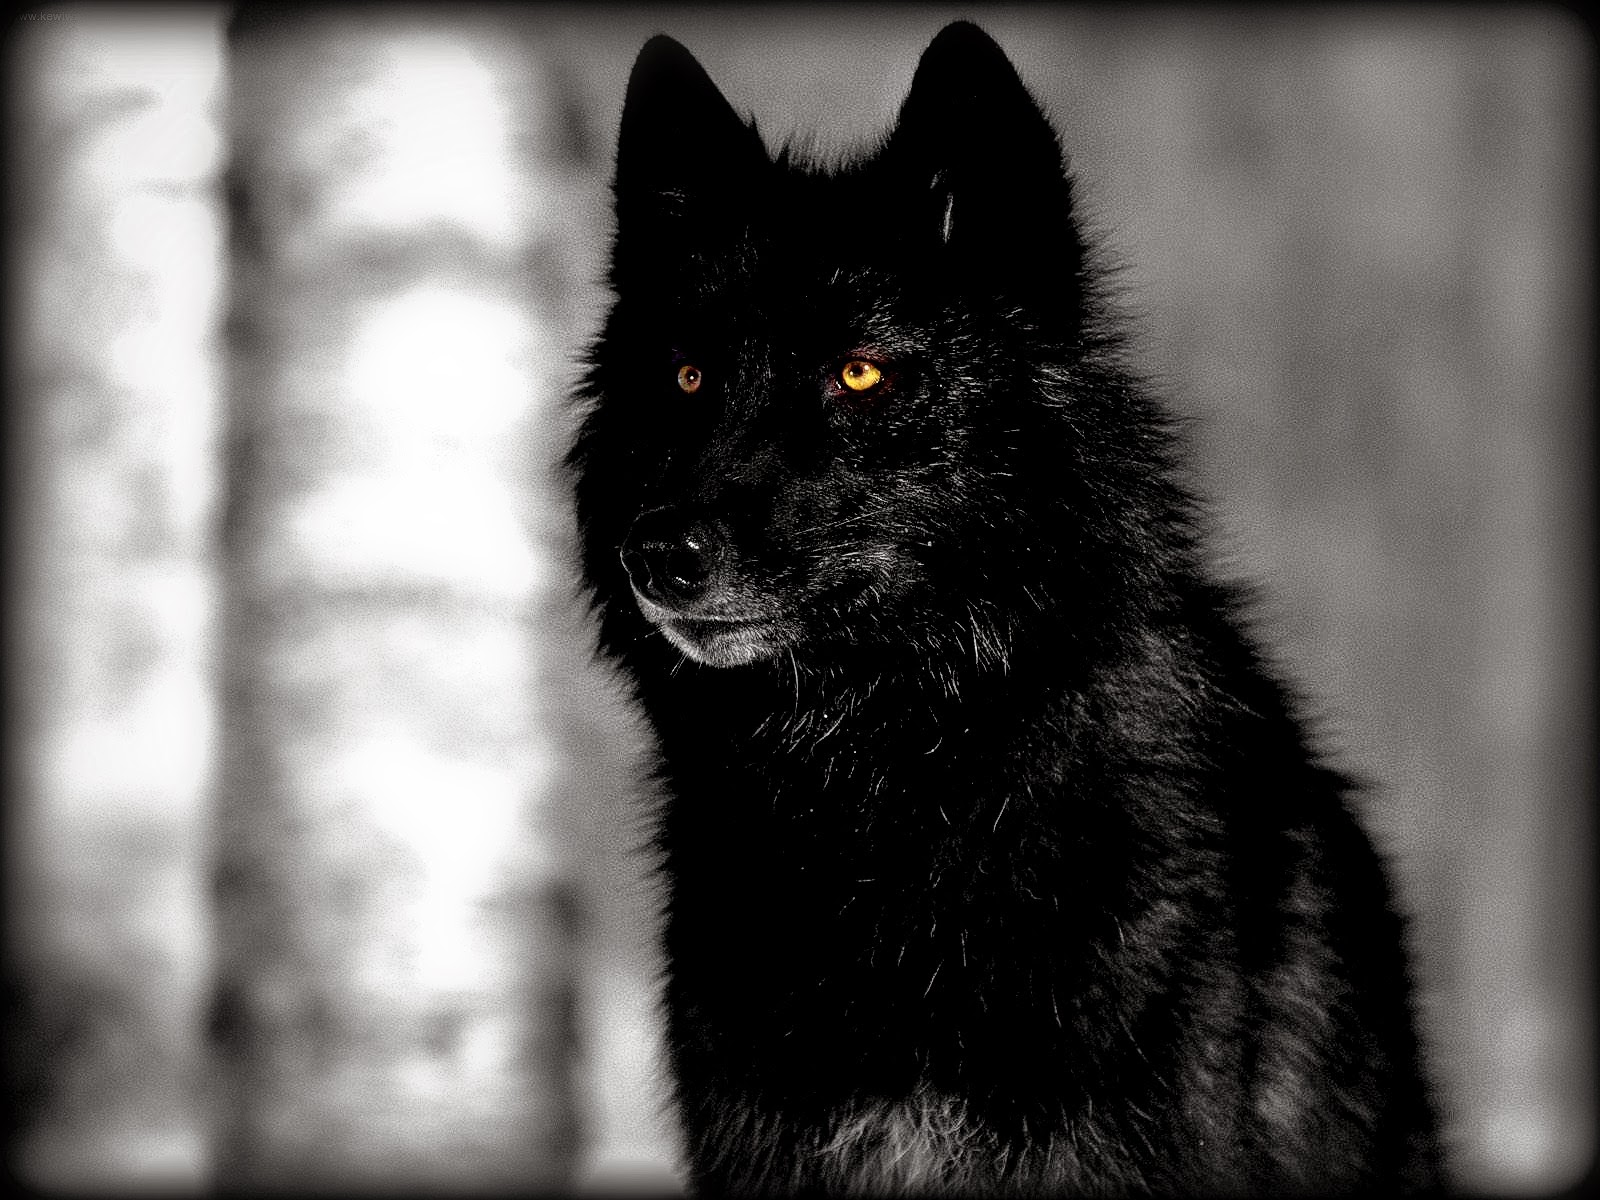 Hd Wolf Backgrounds: White Wolf : Stunning Photographs Showcase The Beauty Of